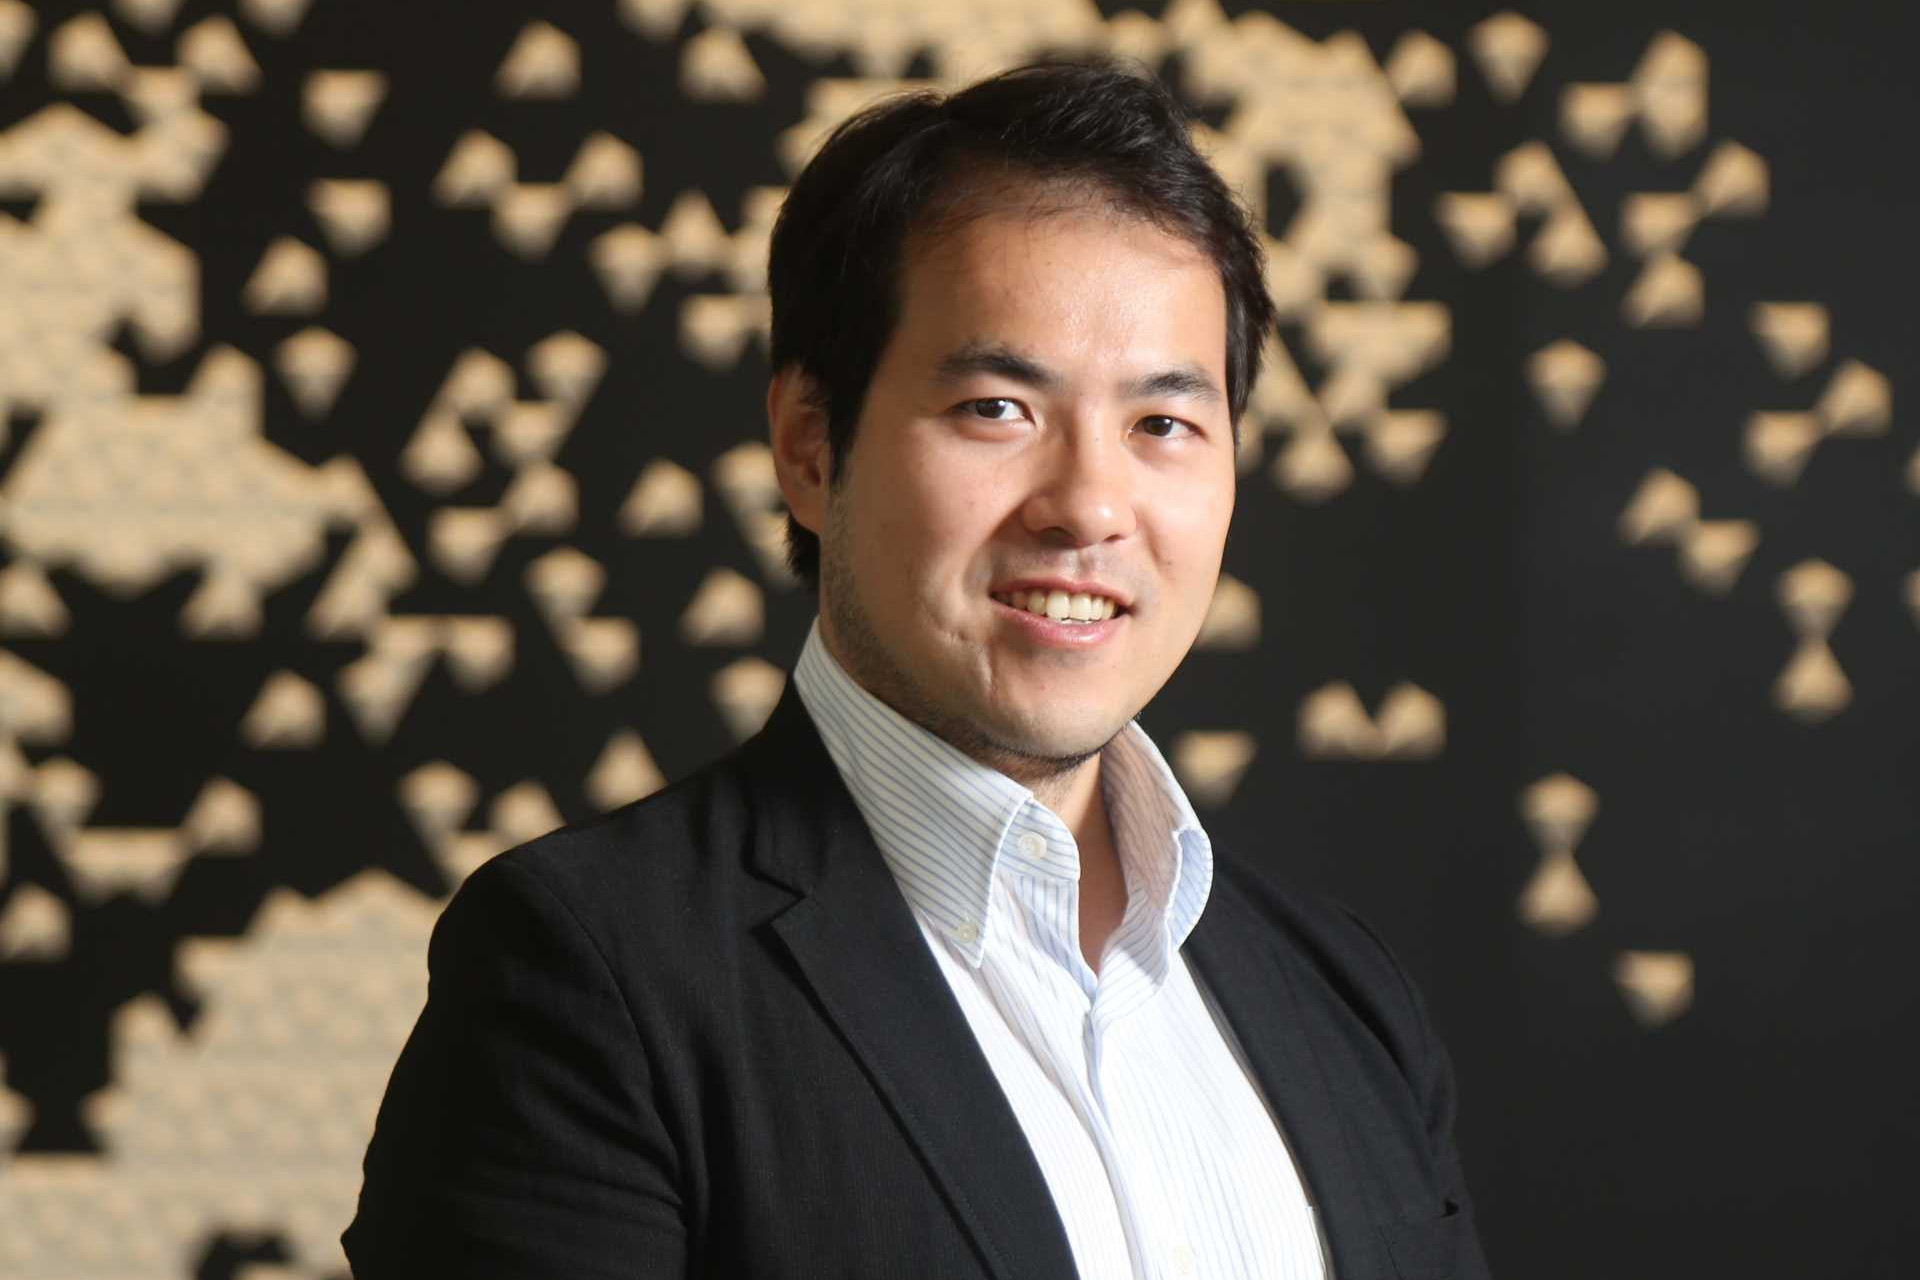 Interview with Dr. Michael C. Huang, Research Fellow at the Ocean Policy Research Institute, on supporting sustainable ocean development with Blue Finance